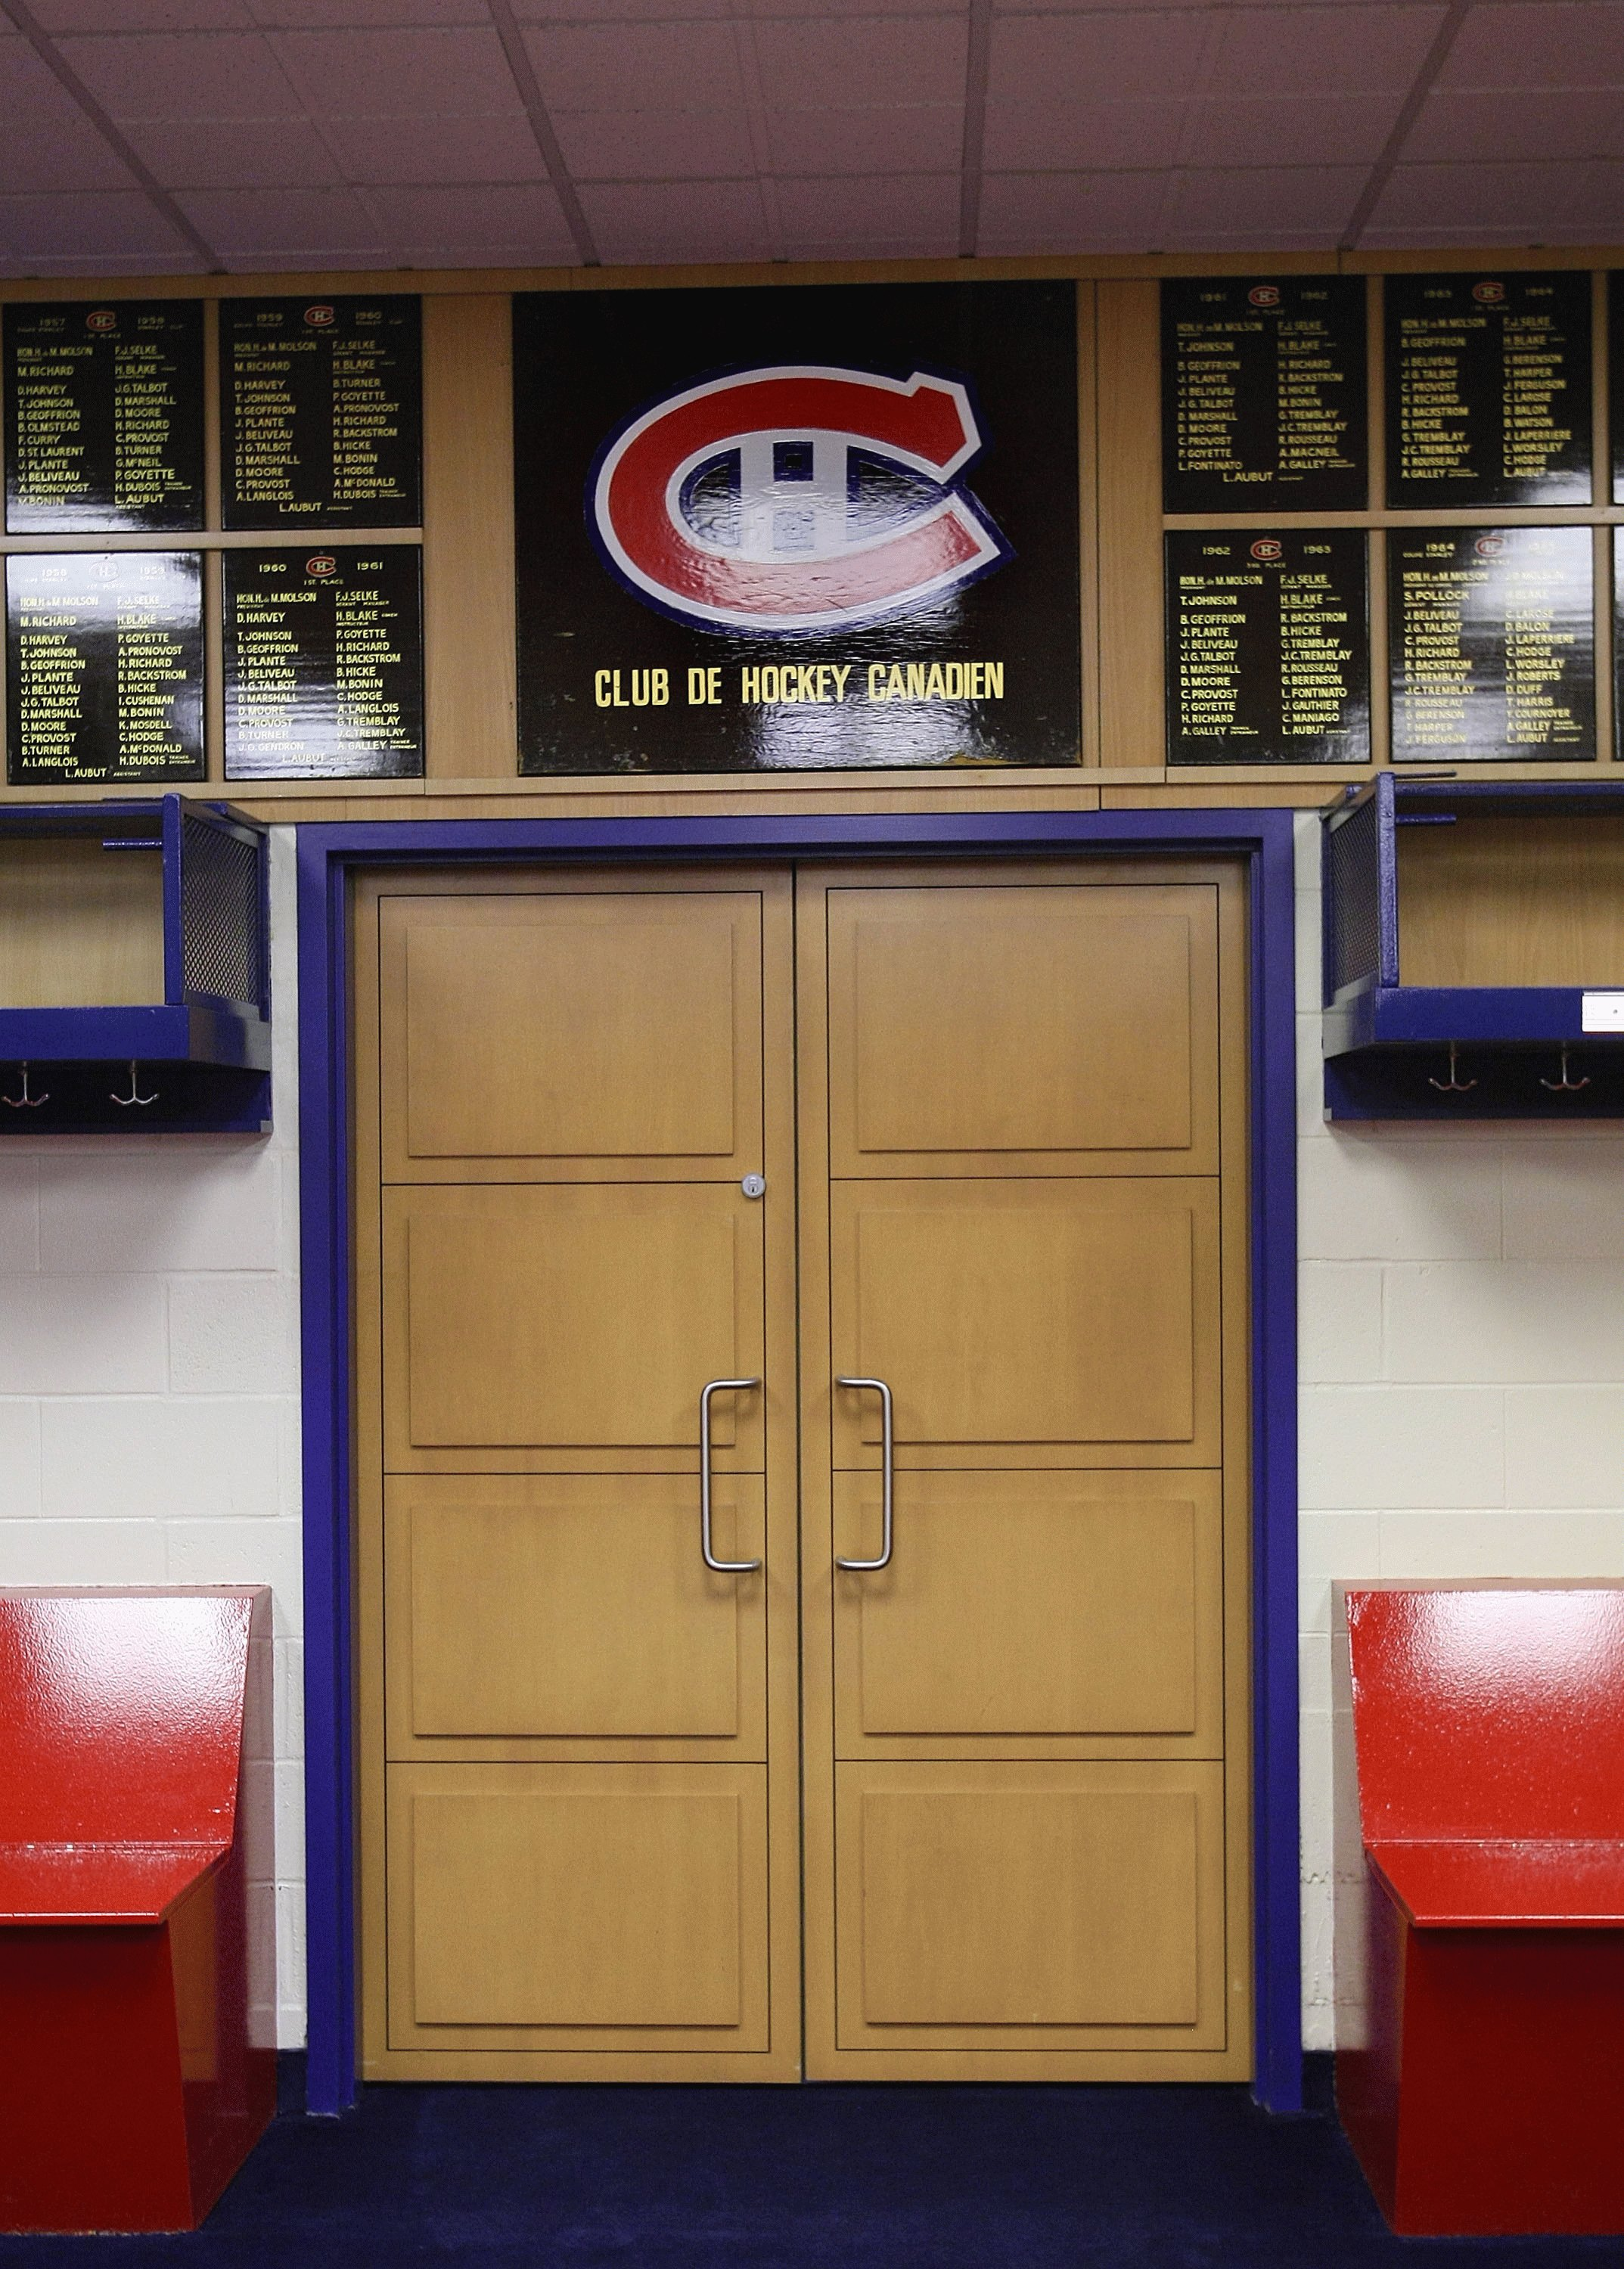 MONTREAL - JANUARY 25:  The entrance to the Montreal Canadiens locker room photographed during the 2009 NHL All-Star game at the Bell Centre on January 25, 2009 in Montreal, Canada. (Photo by Bruce Bennett/Getty Images)